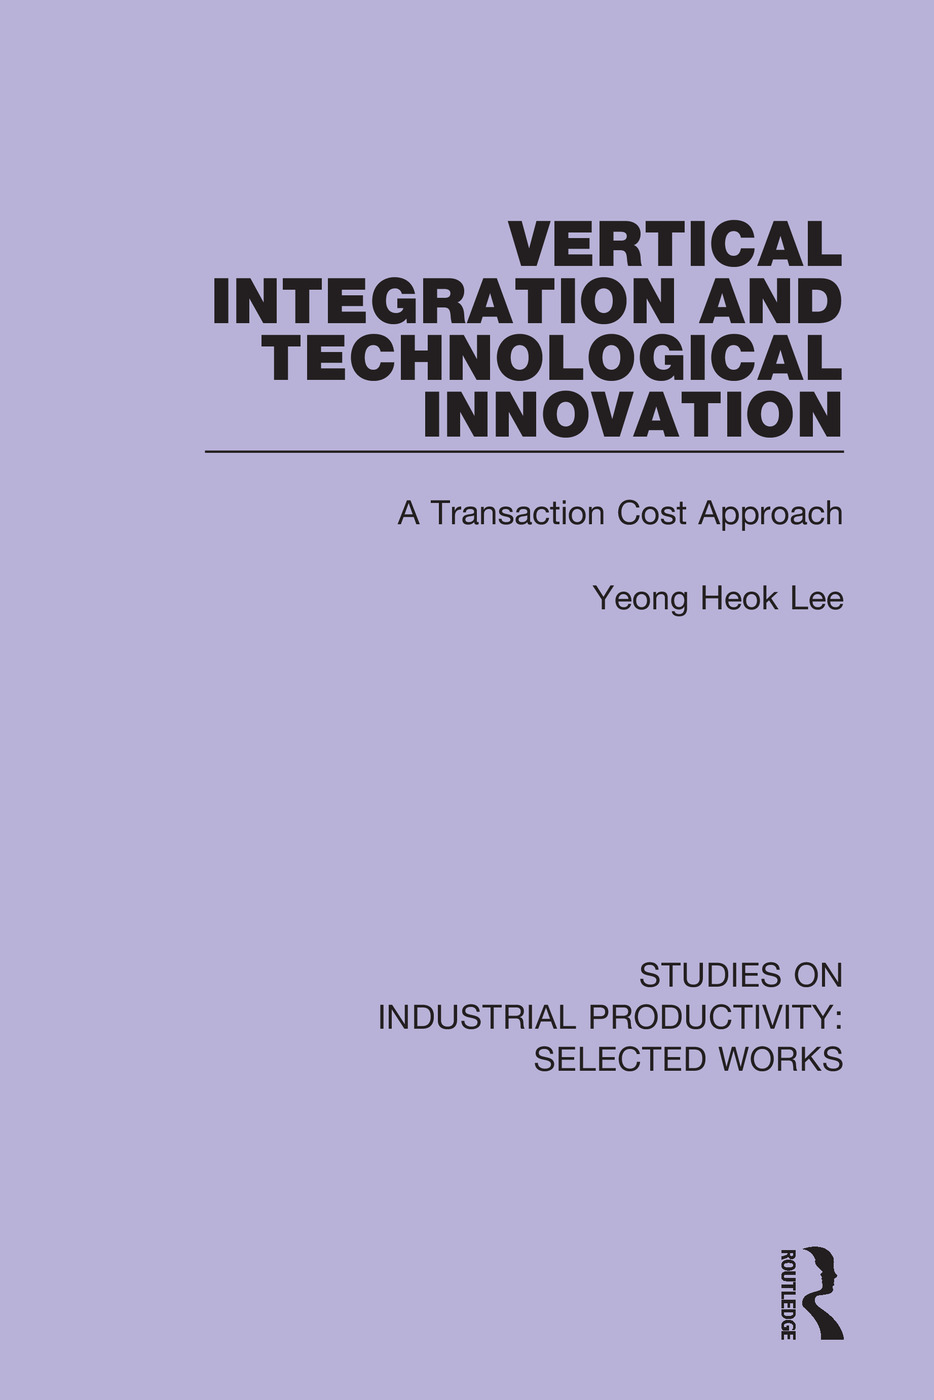 Vertical Integration and Technological Innovation: A Transaction Cost Approach book cover